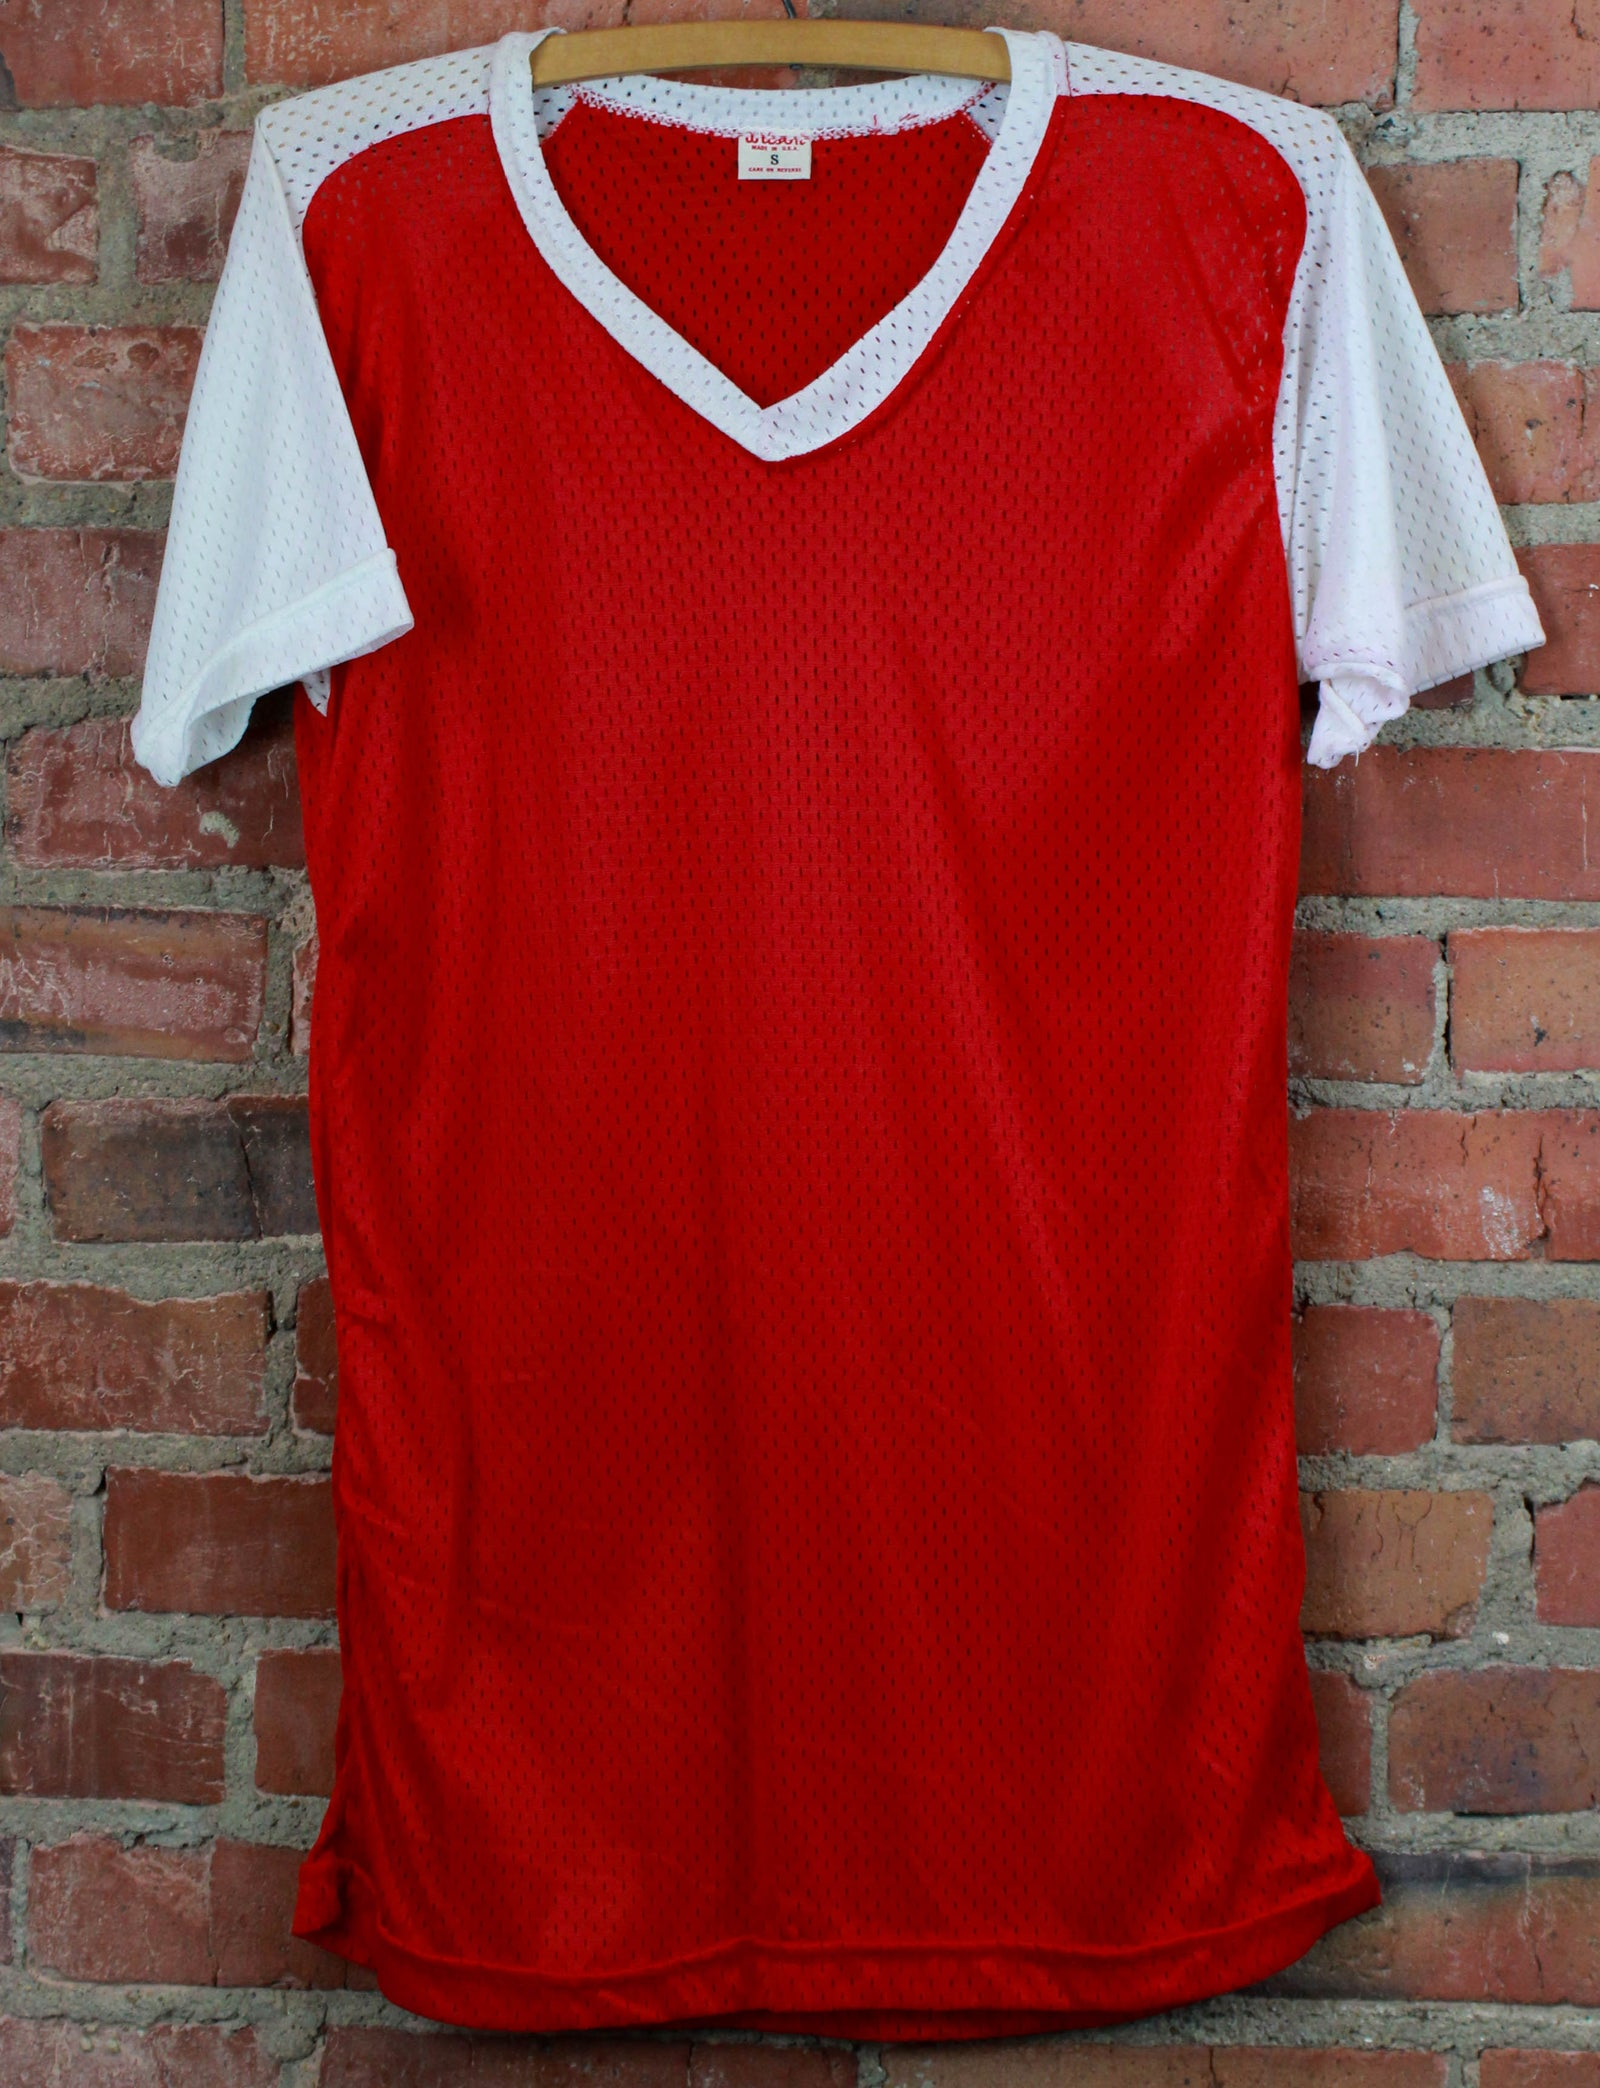 Vintage 80's Red/White Jersey T Shirt Mesh Dead-Stock Unisex Small